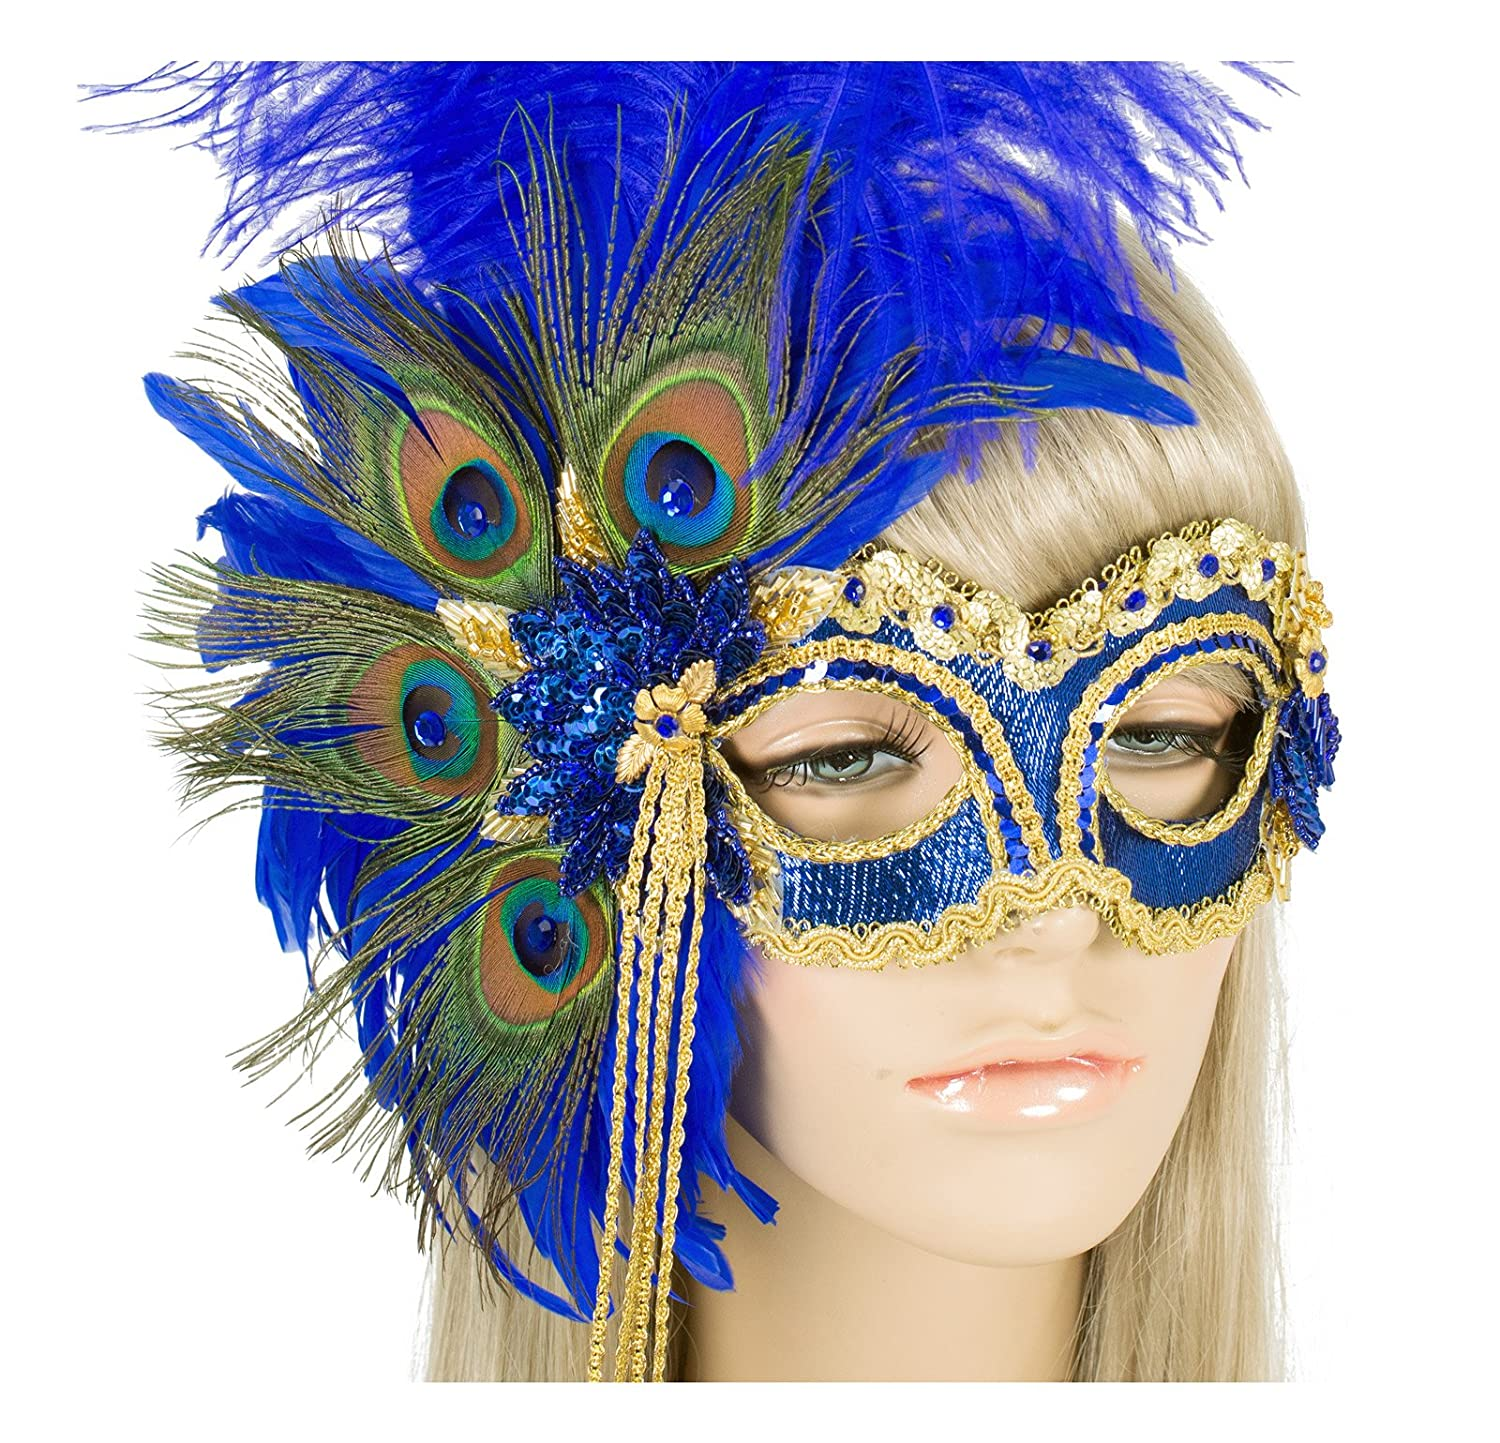 Masquerade Ball Clothing: Masks, Gowns, Tuxedos Handmade in USA Masquerade Mask with Peacock Feathers and Crystals $169.99 AT vintagedancer.com